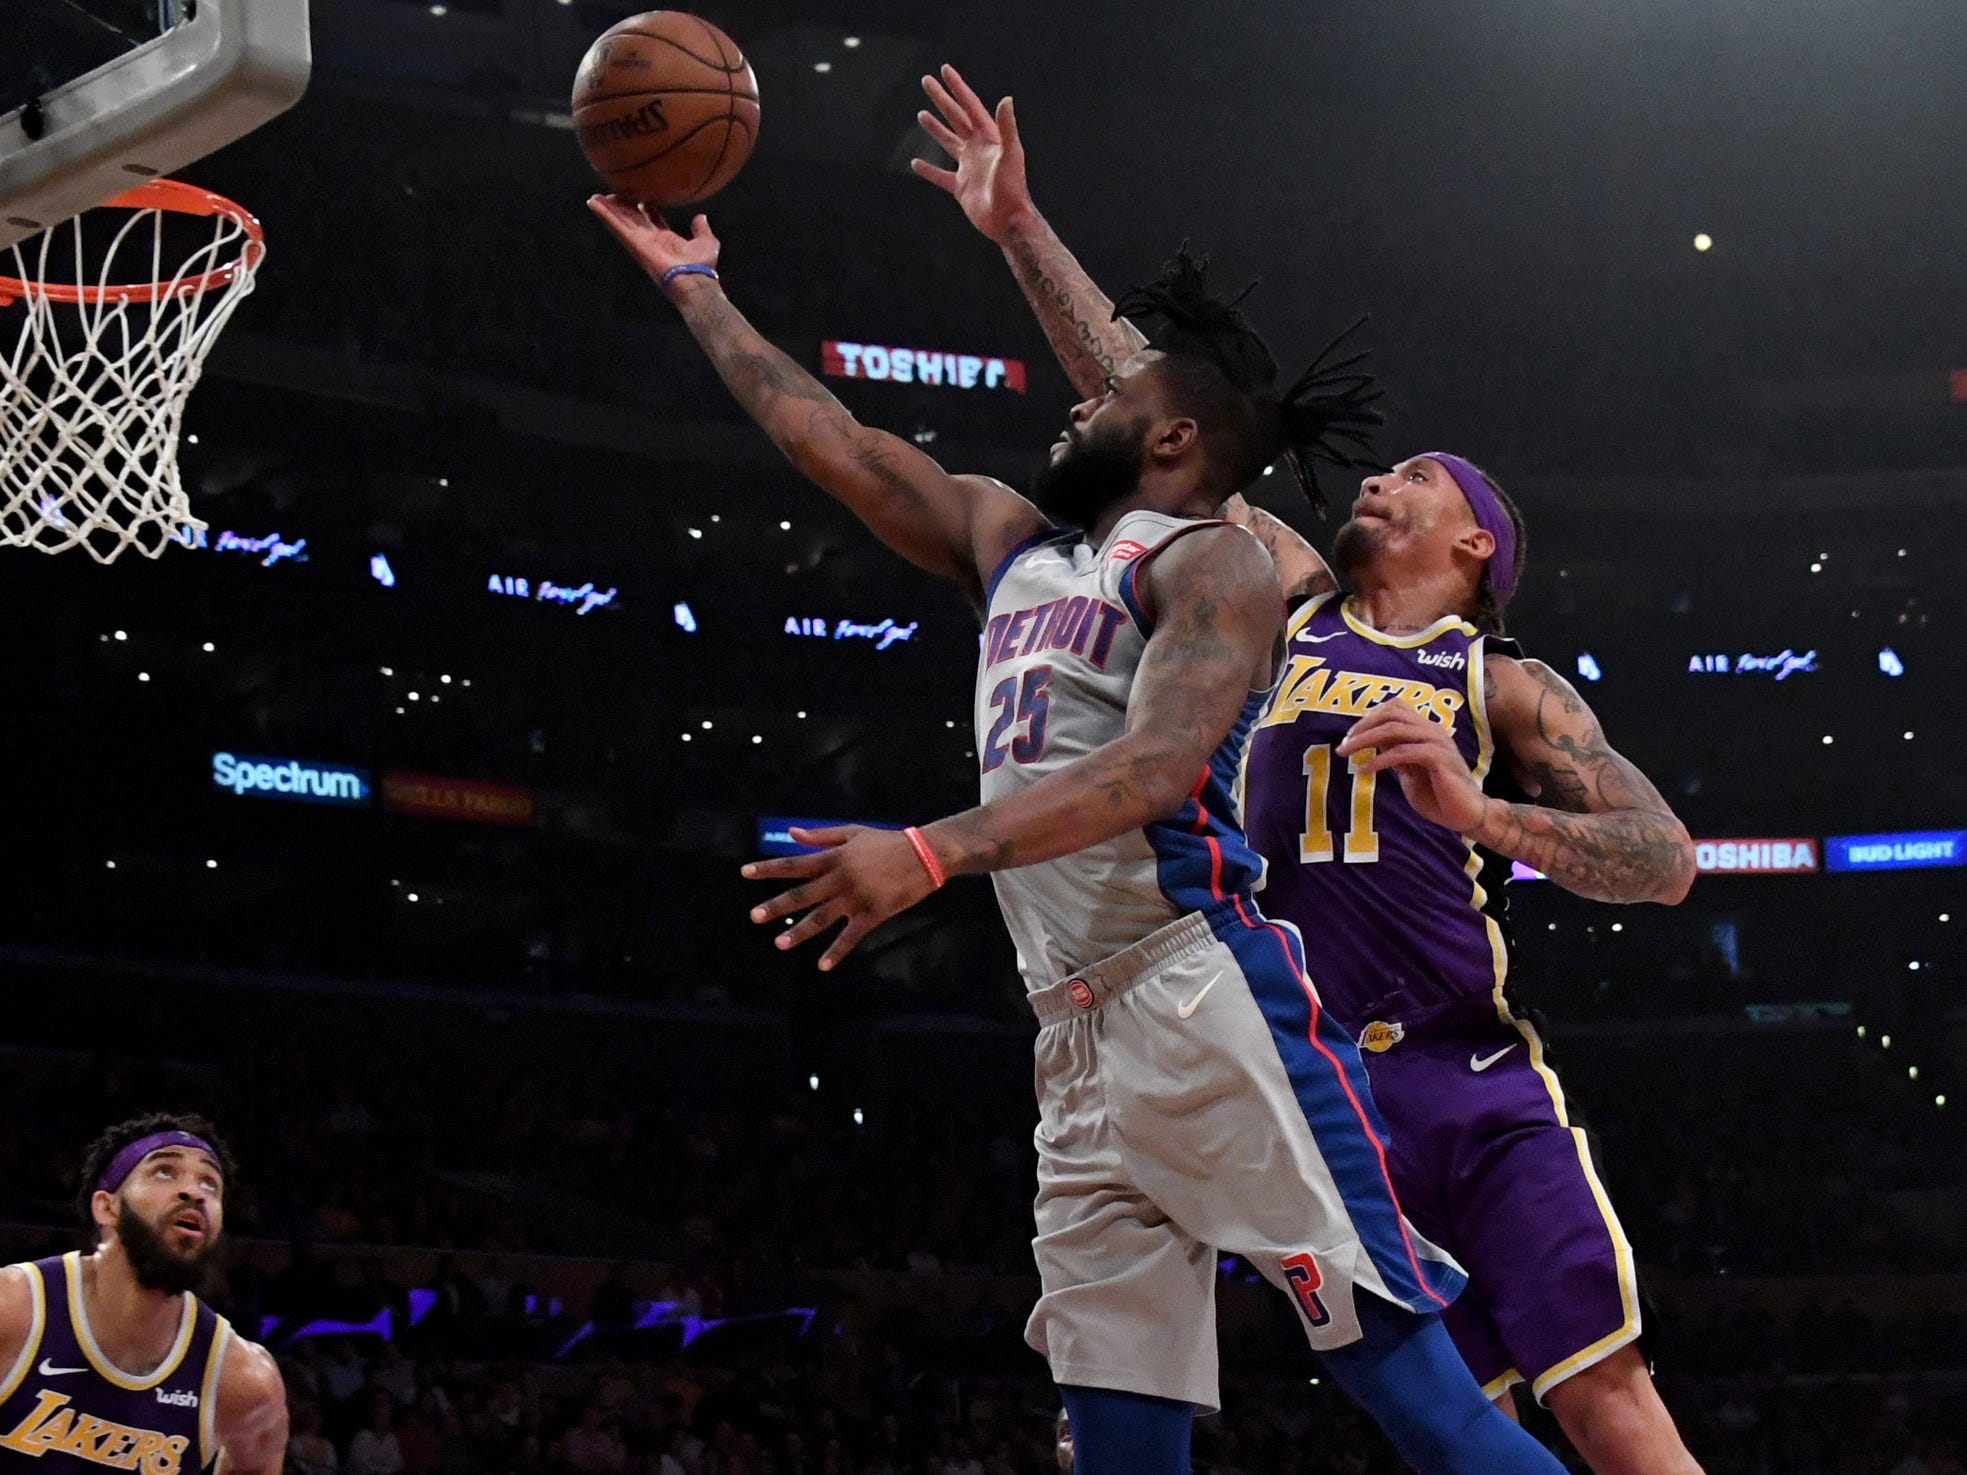 Detroit Pistons guard Reggie Bullock (25) drives to the basket as Los Angeles Lakers forward Michael Beasley (11) defends during the first half at the Staples Center on Wednesday, Jan. 9, 2019, in Los Angeles.